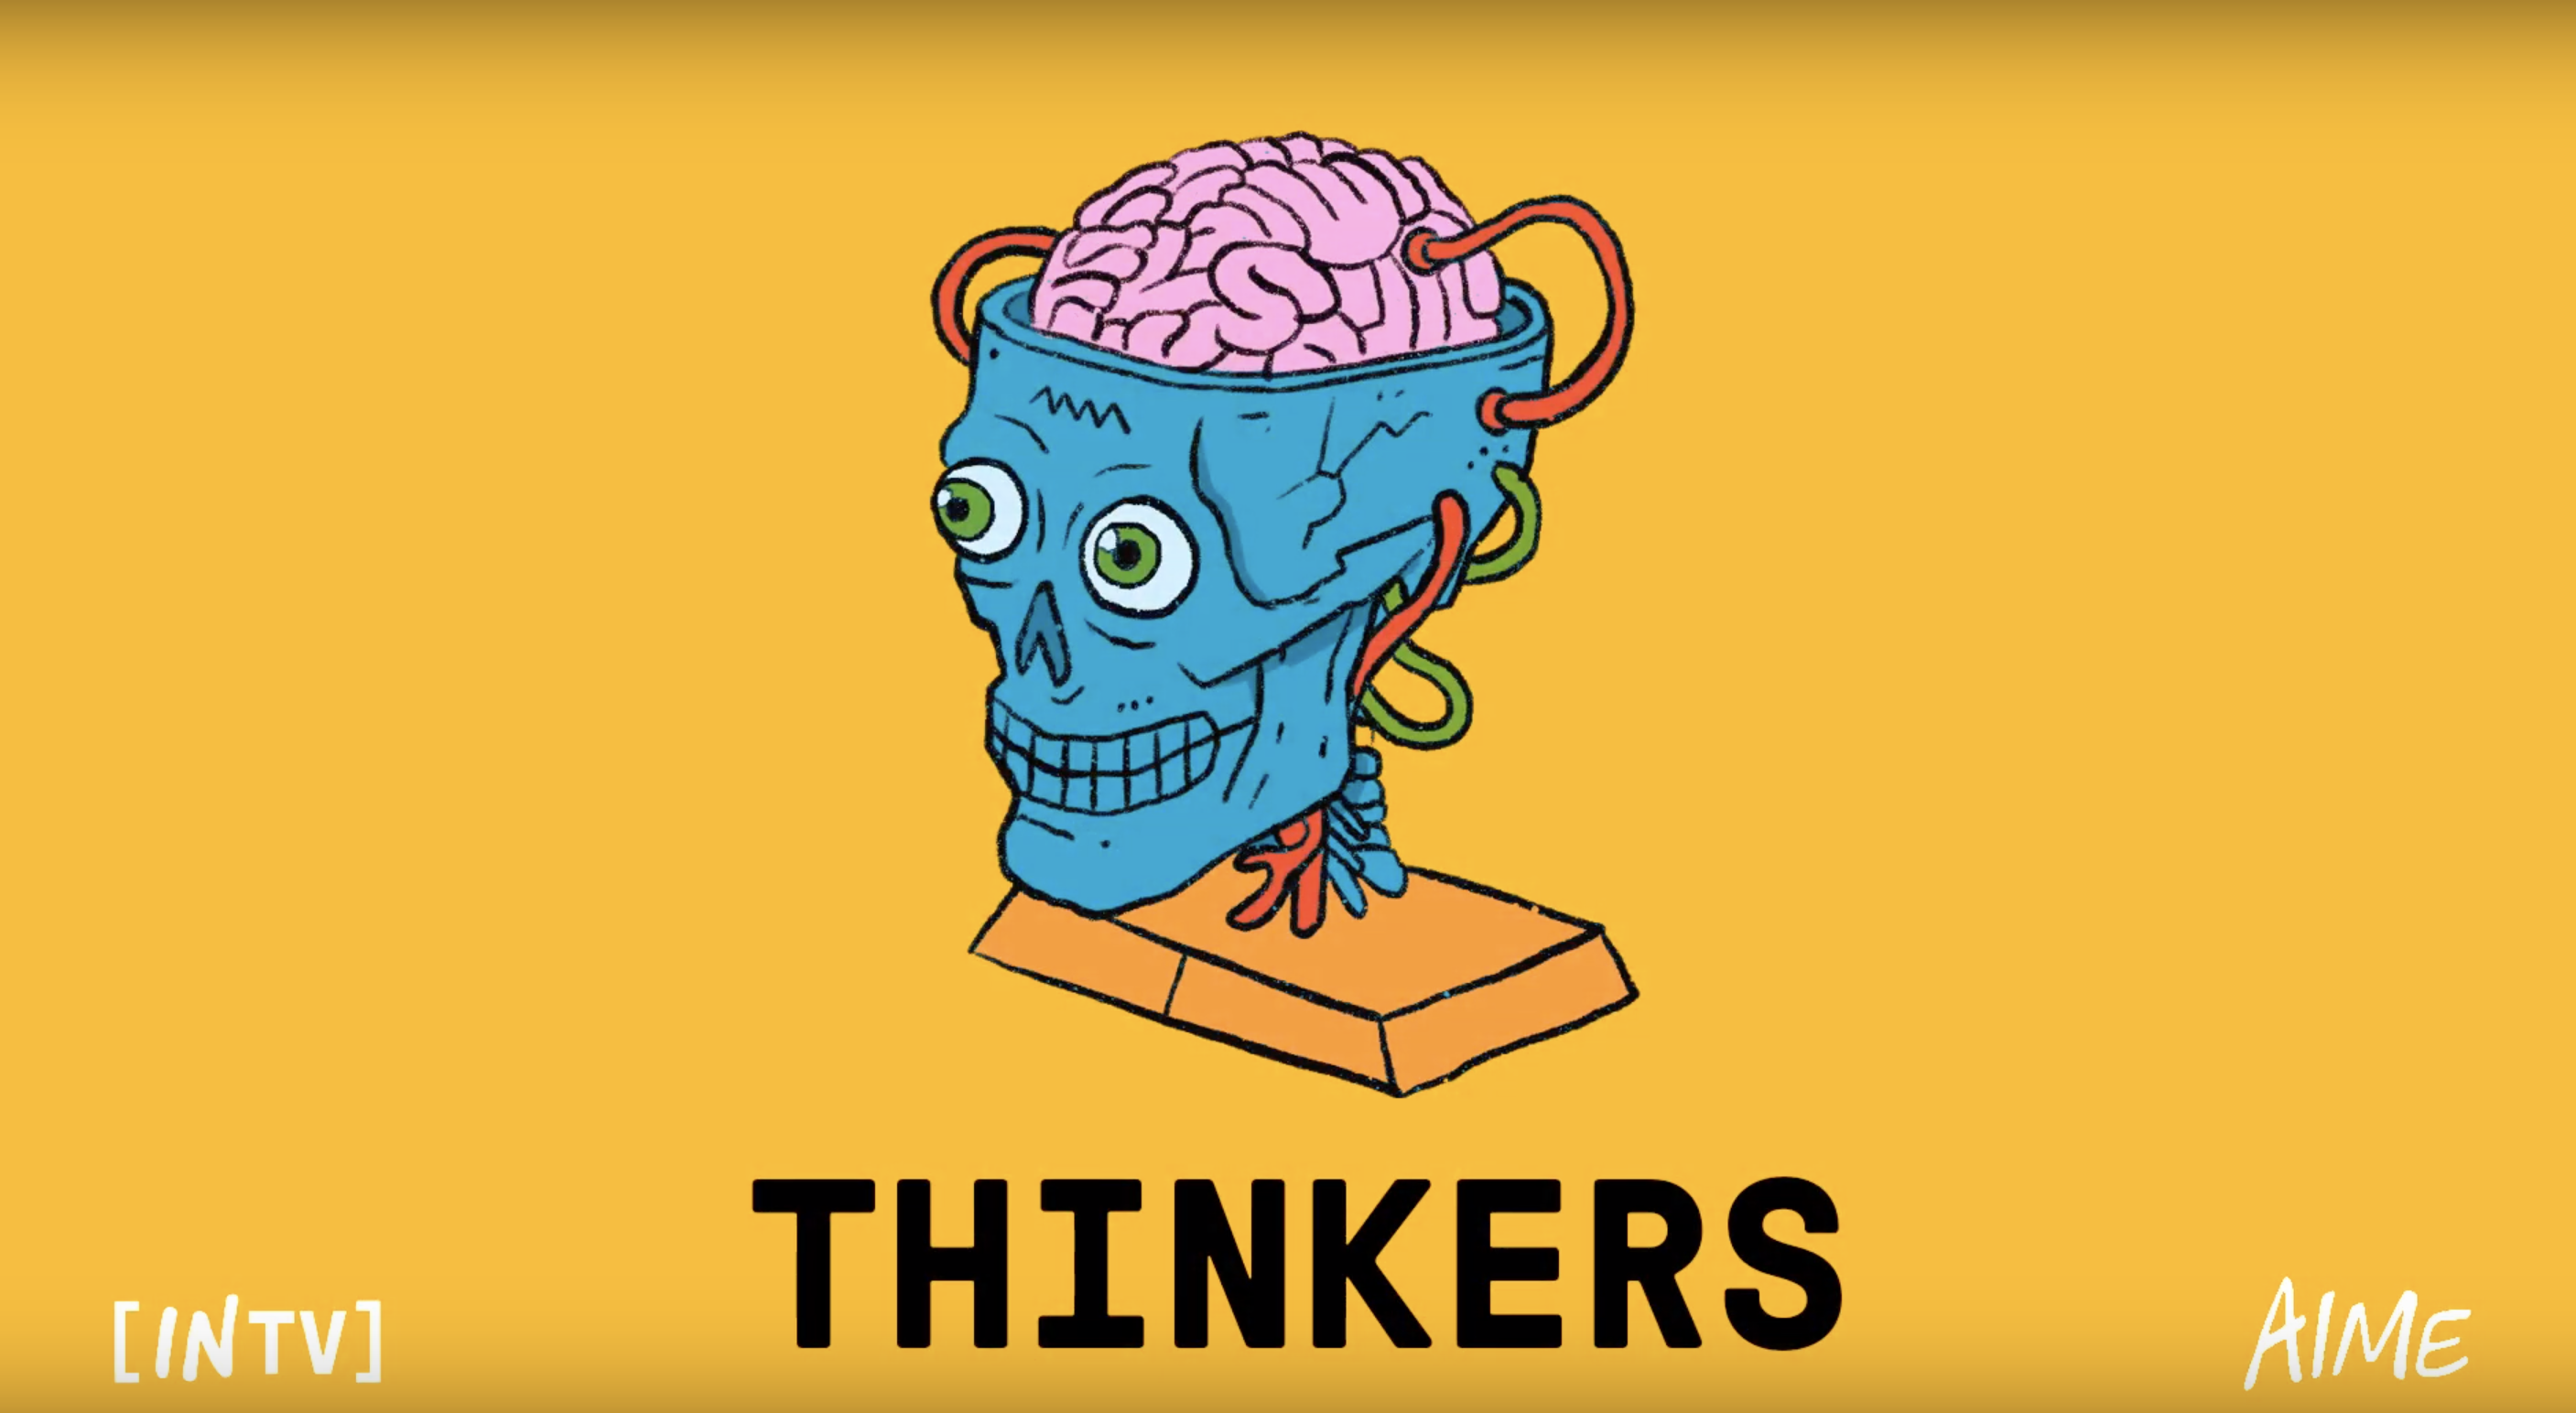 IN{TV} - EP 11 - THINKERS: HOW DO WE BUILD TRUST?